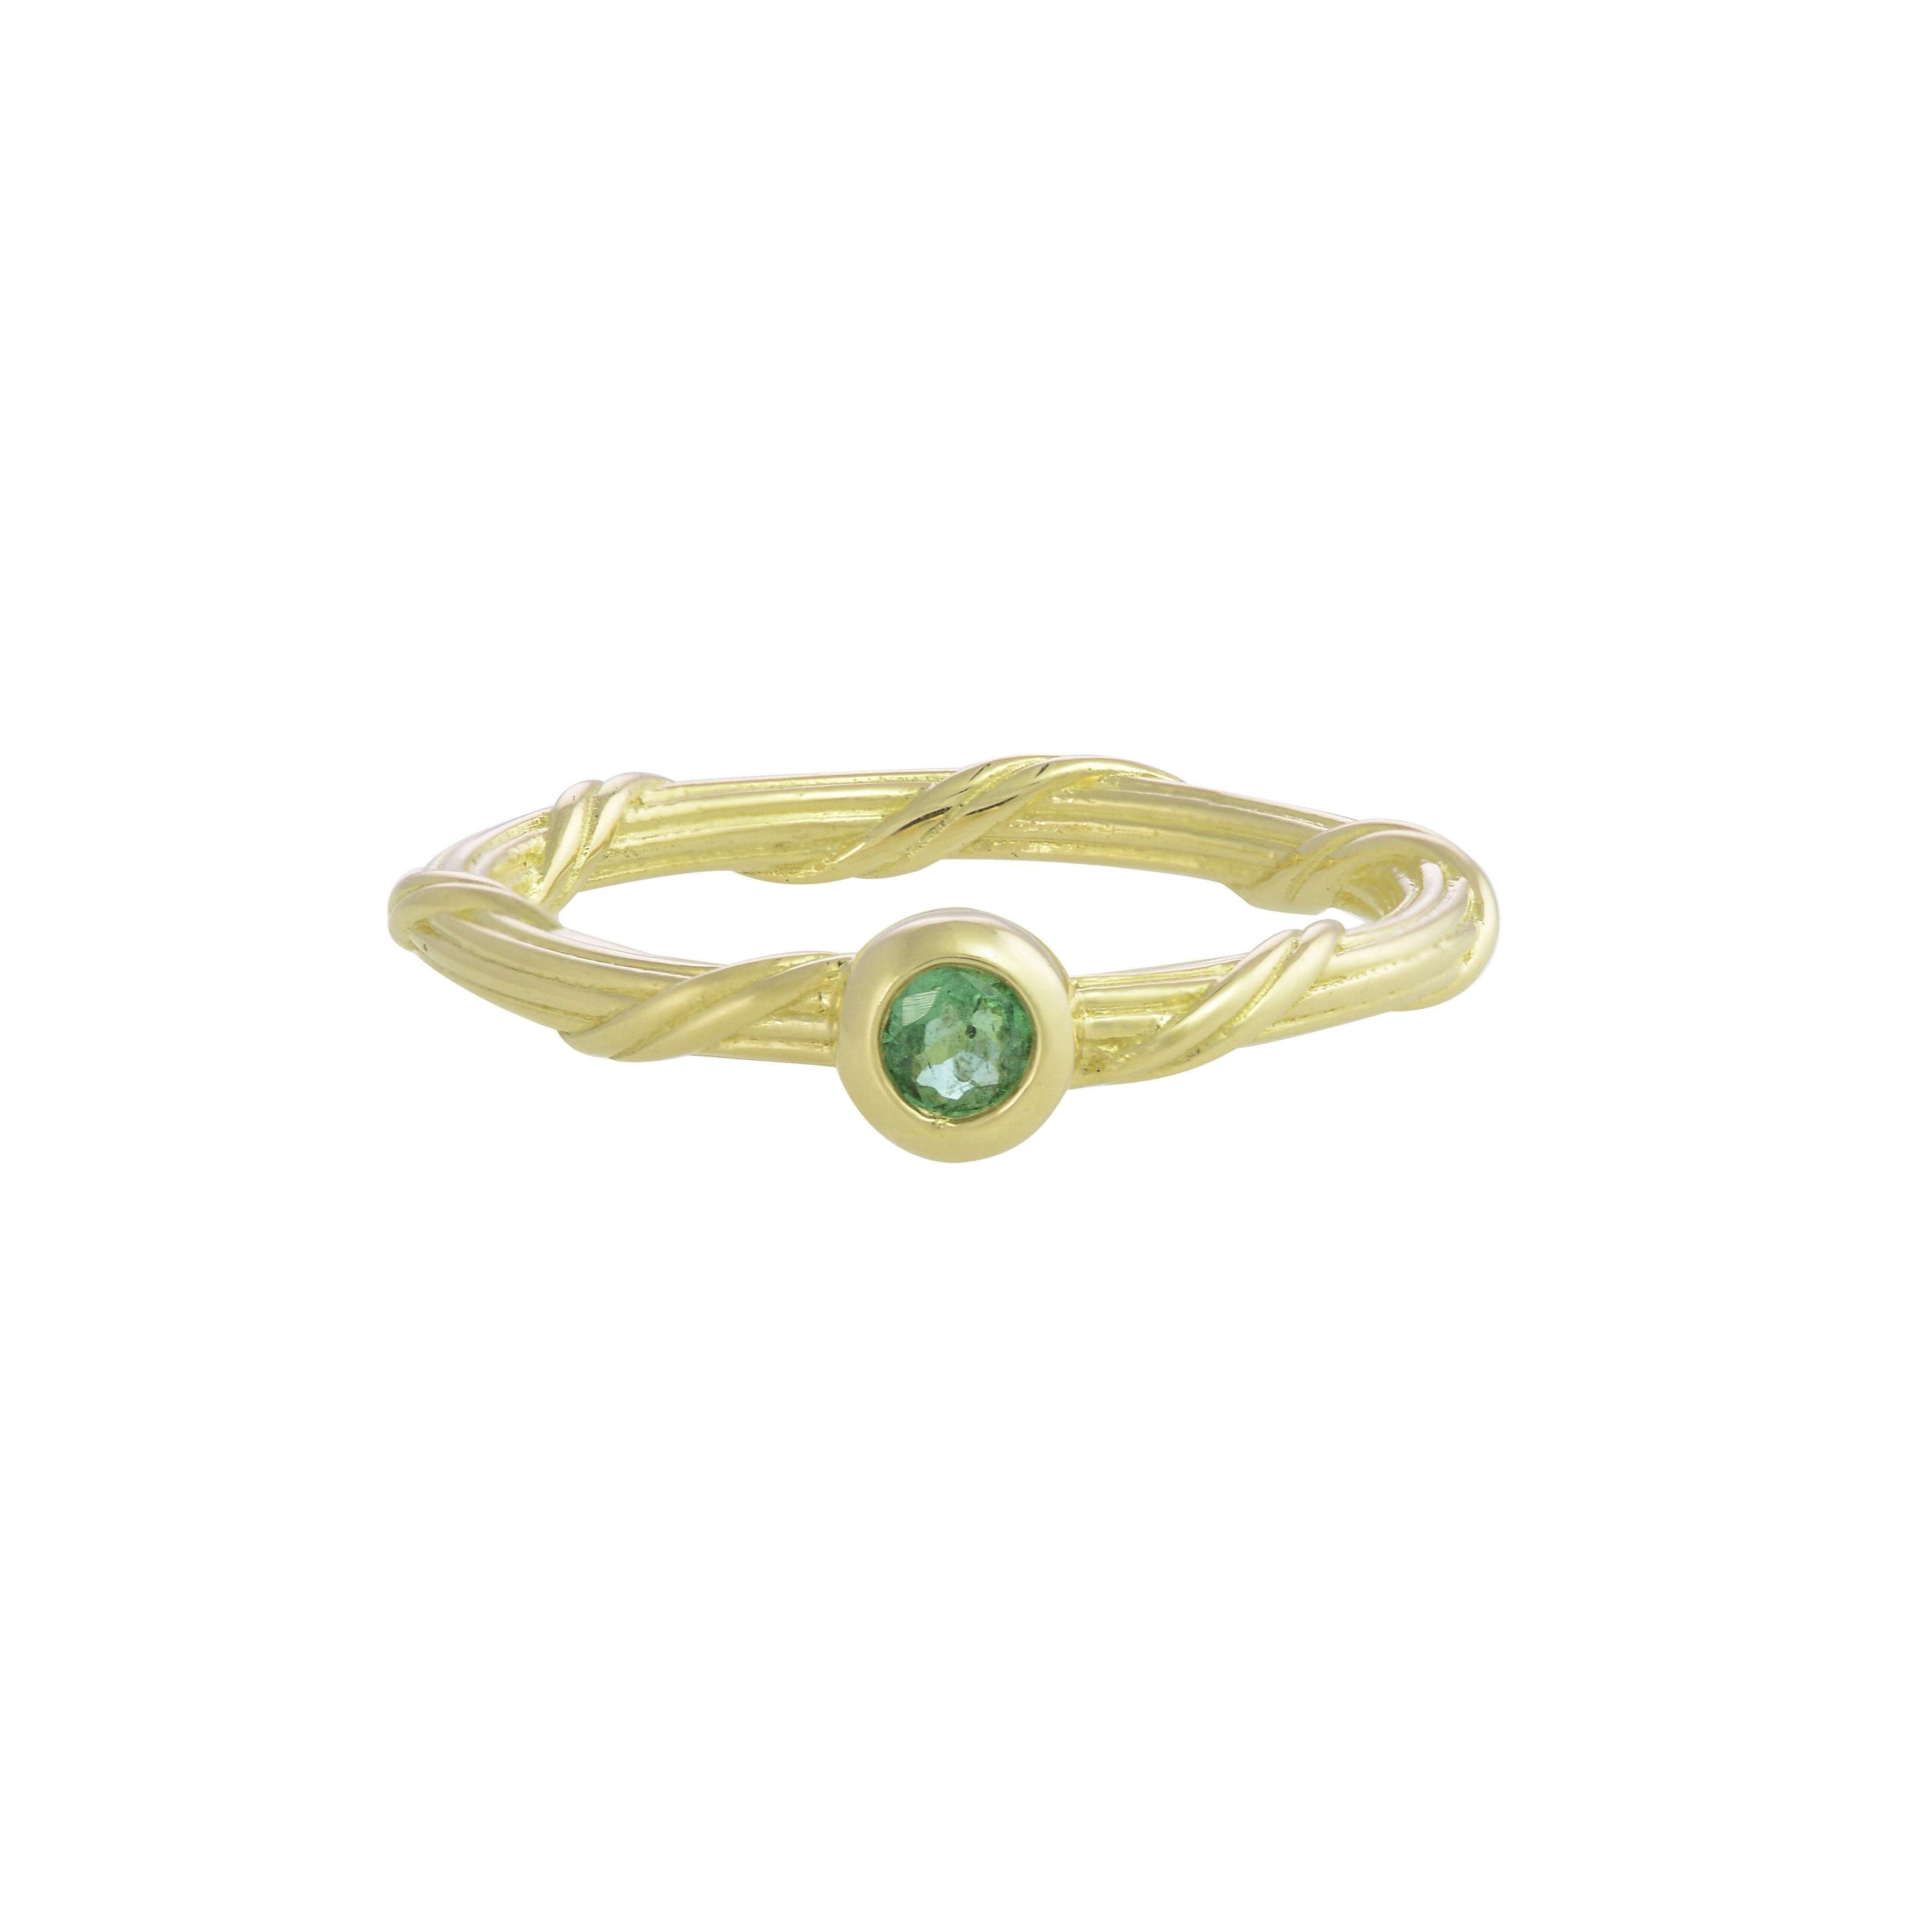 Heritage Emerald Ring in 18K gold